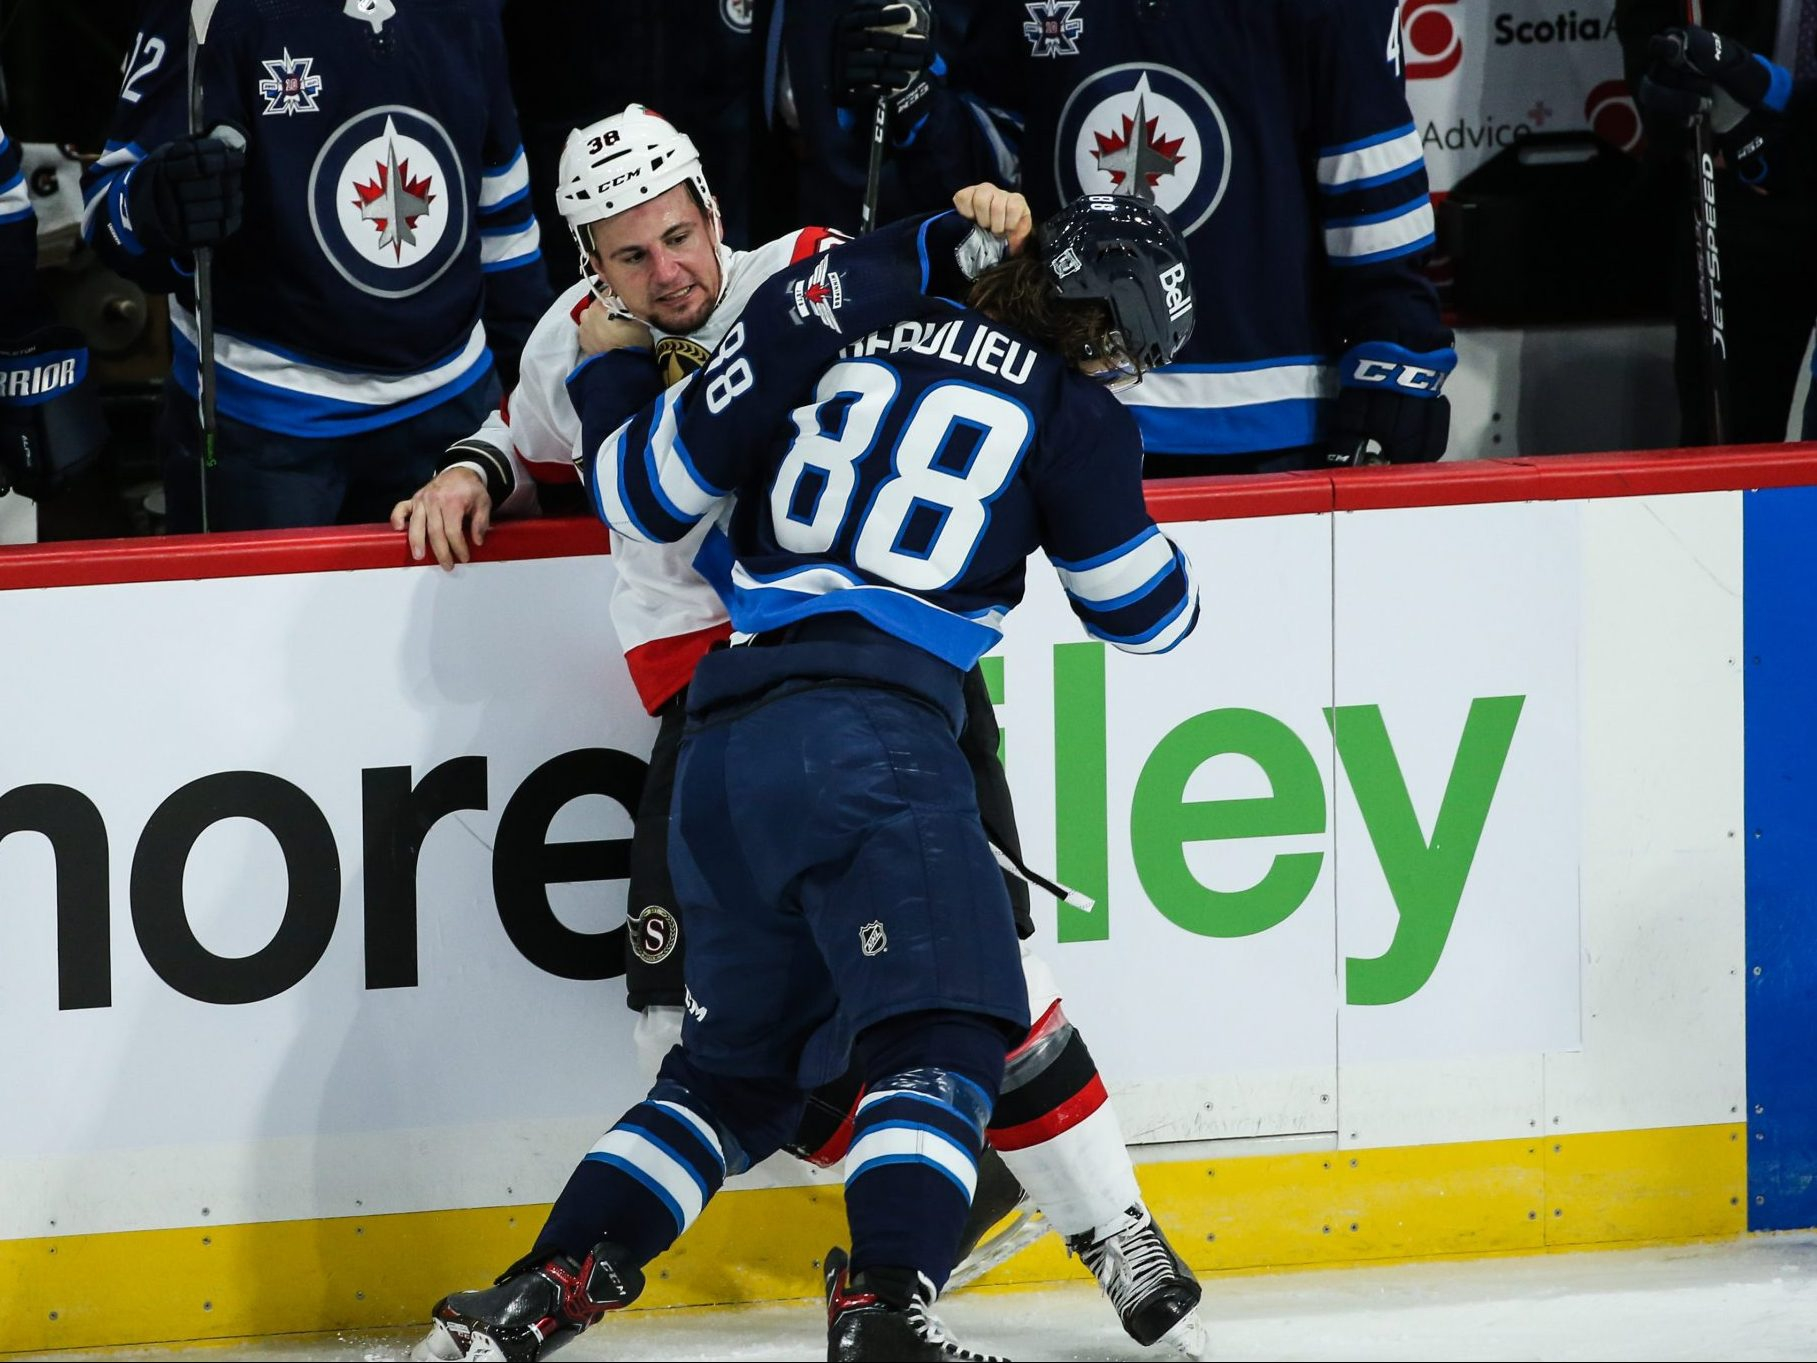 Good riddance: Senators lose third in a row to Jets